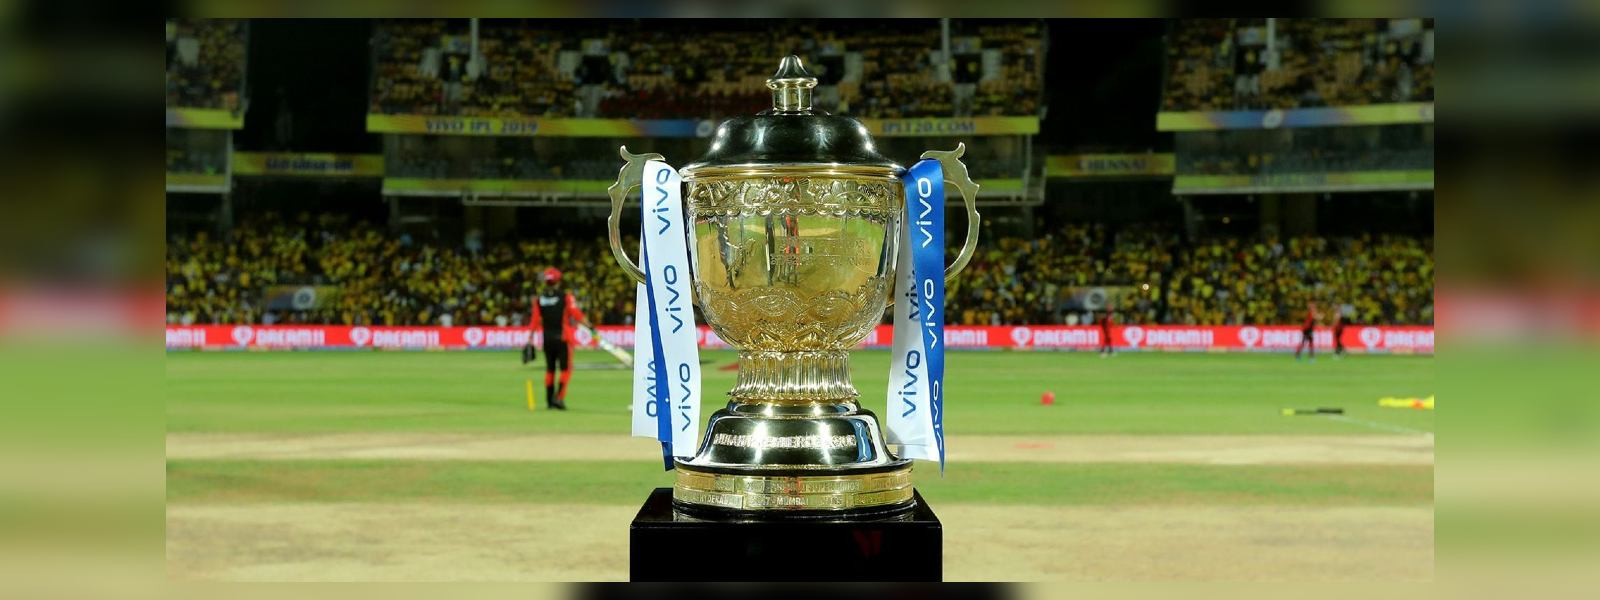 The Indian Premier League suspended indefinitely for the first time in its history